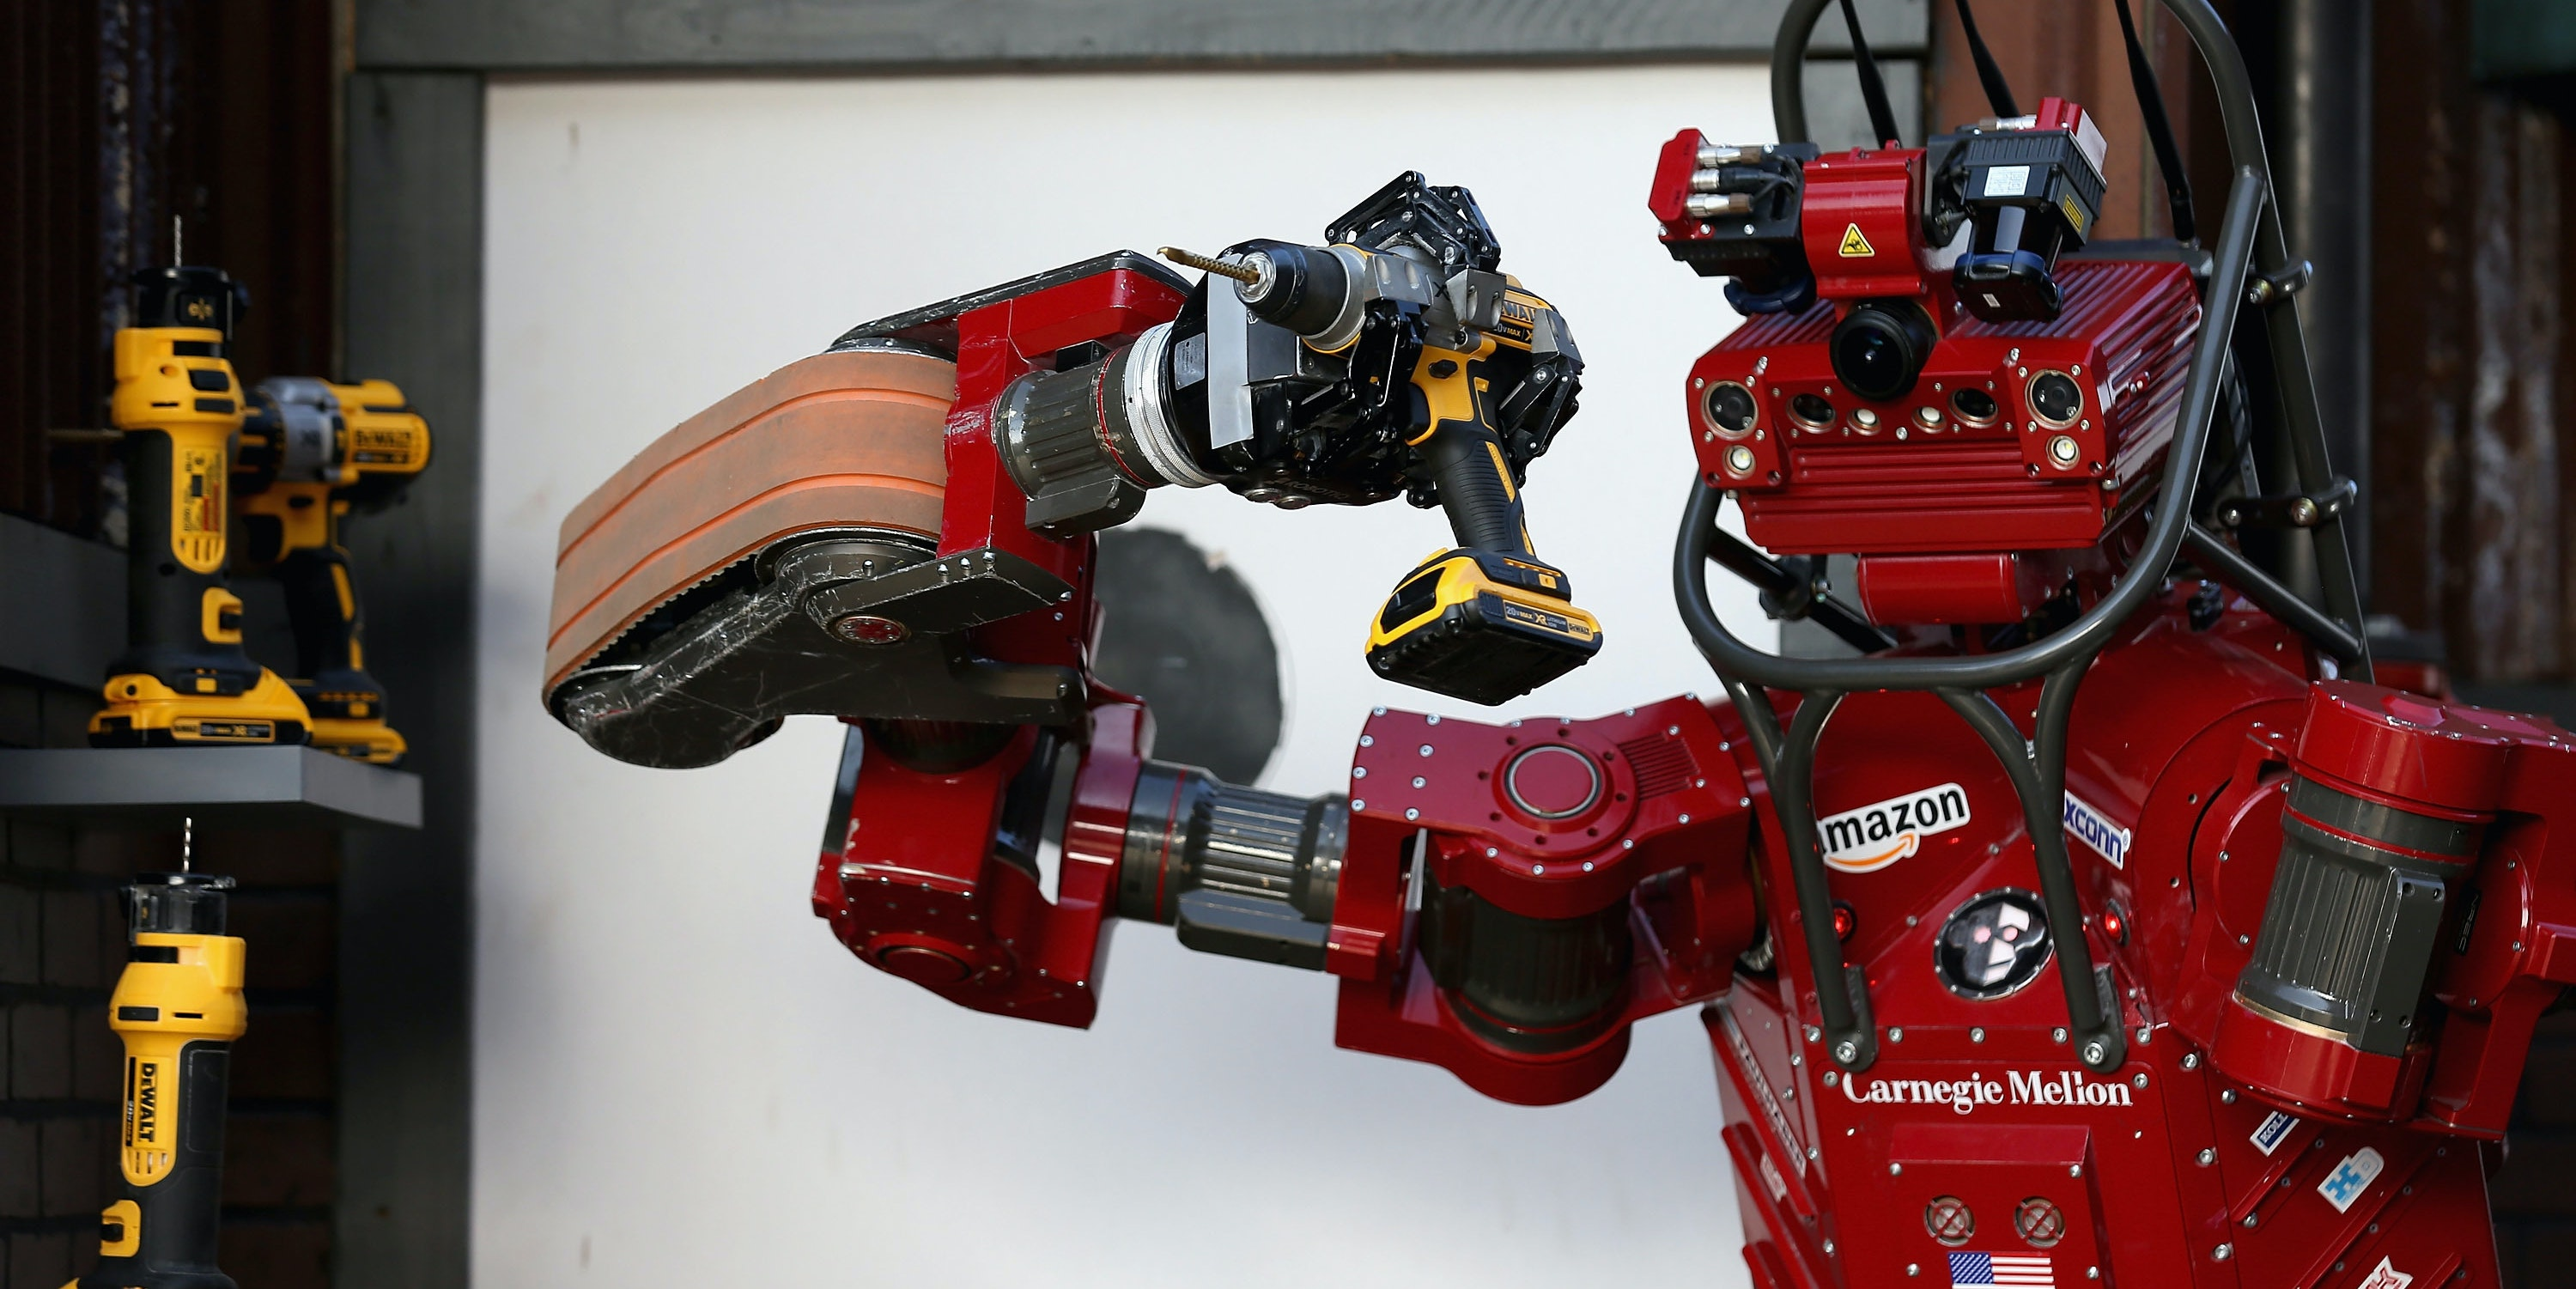 POMONA, CA - JUNE 06: Team Tartan Rescue's CHIMP (CMU Highly Intelligent Mobile Platform) robot uses a hand-held power tool during the cutting task of the Defense Advanced Research Projects Agency (DARPA) Robotics Challenge at the Fairplex June 6, 2015 in Pomona, California. Built by Carnegie Mellon University-NREC, CHIMP took home a third prize check for $500,000. Organized by DARPA, the Pentagon's science research group, 24 teams from aorund the world are competing for $3.5 million in prize money that will be awarded to the robots that best respond to natural and man-made disasters.  (Photo by Chip Somodevilla/Getty Images)